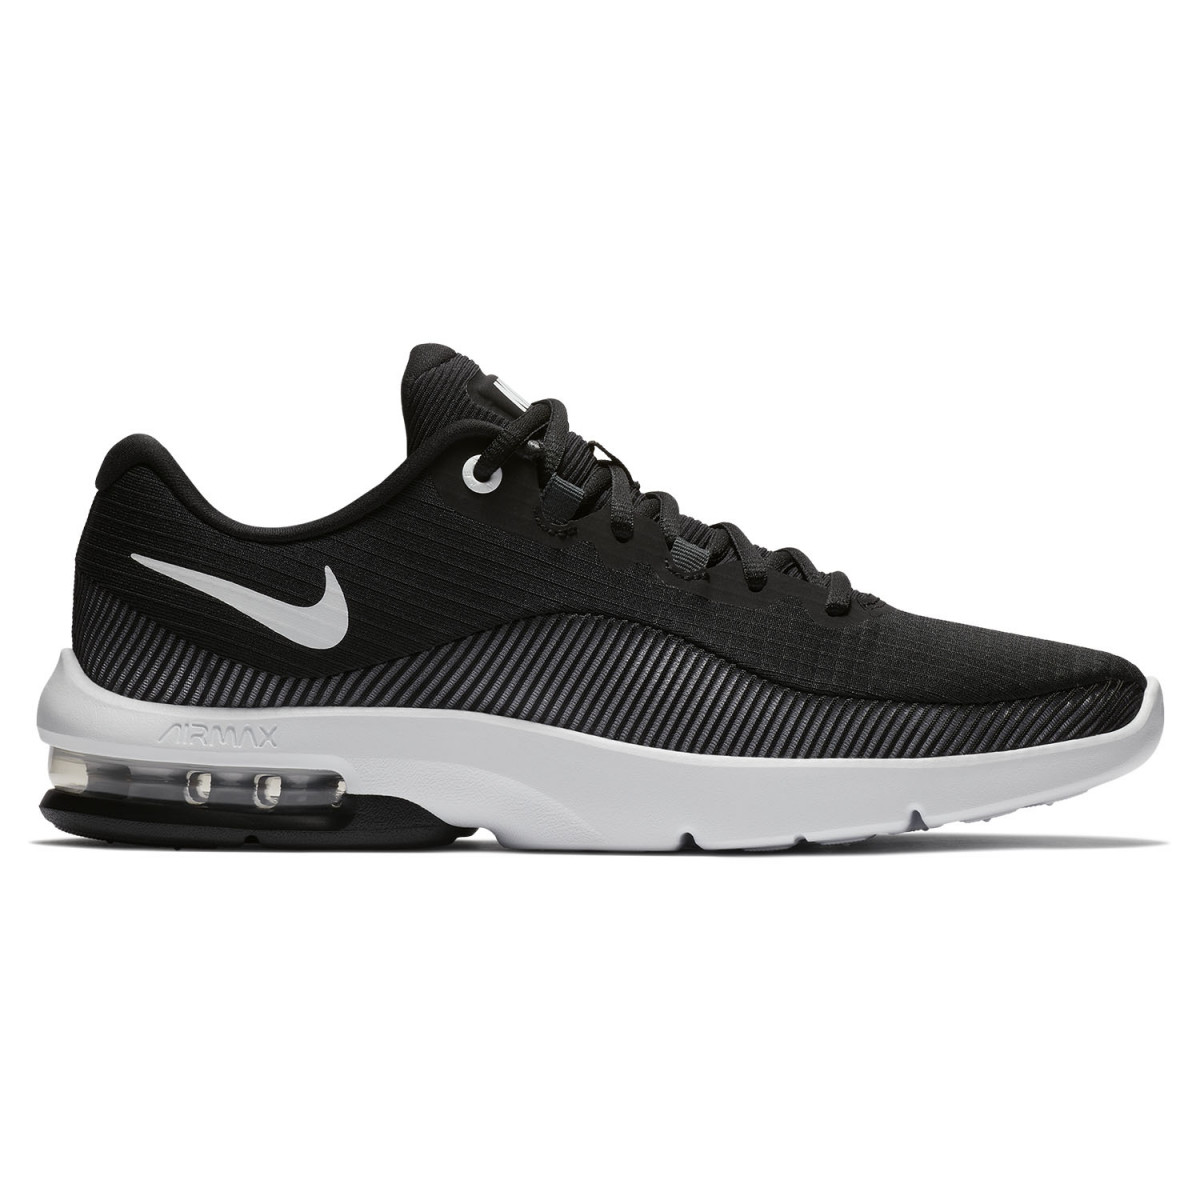 Zapatillas Nike Air Advantage 2